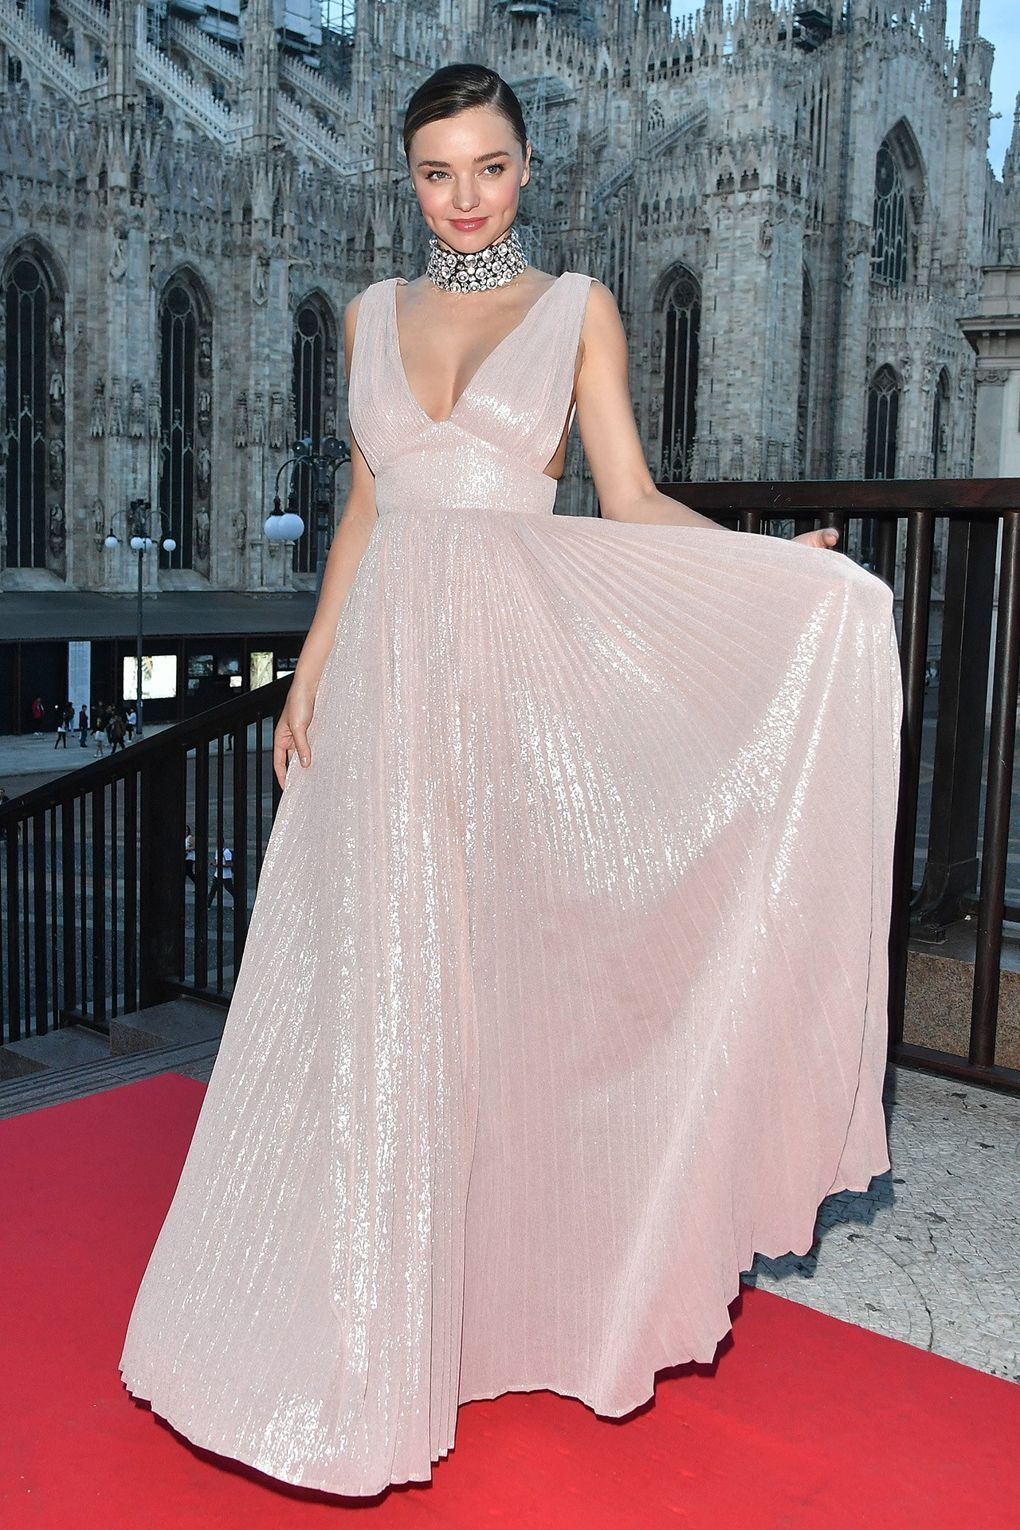 Fairy tale dresses the fantasy way to do party dressing caftan